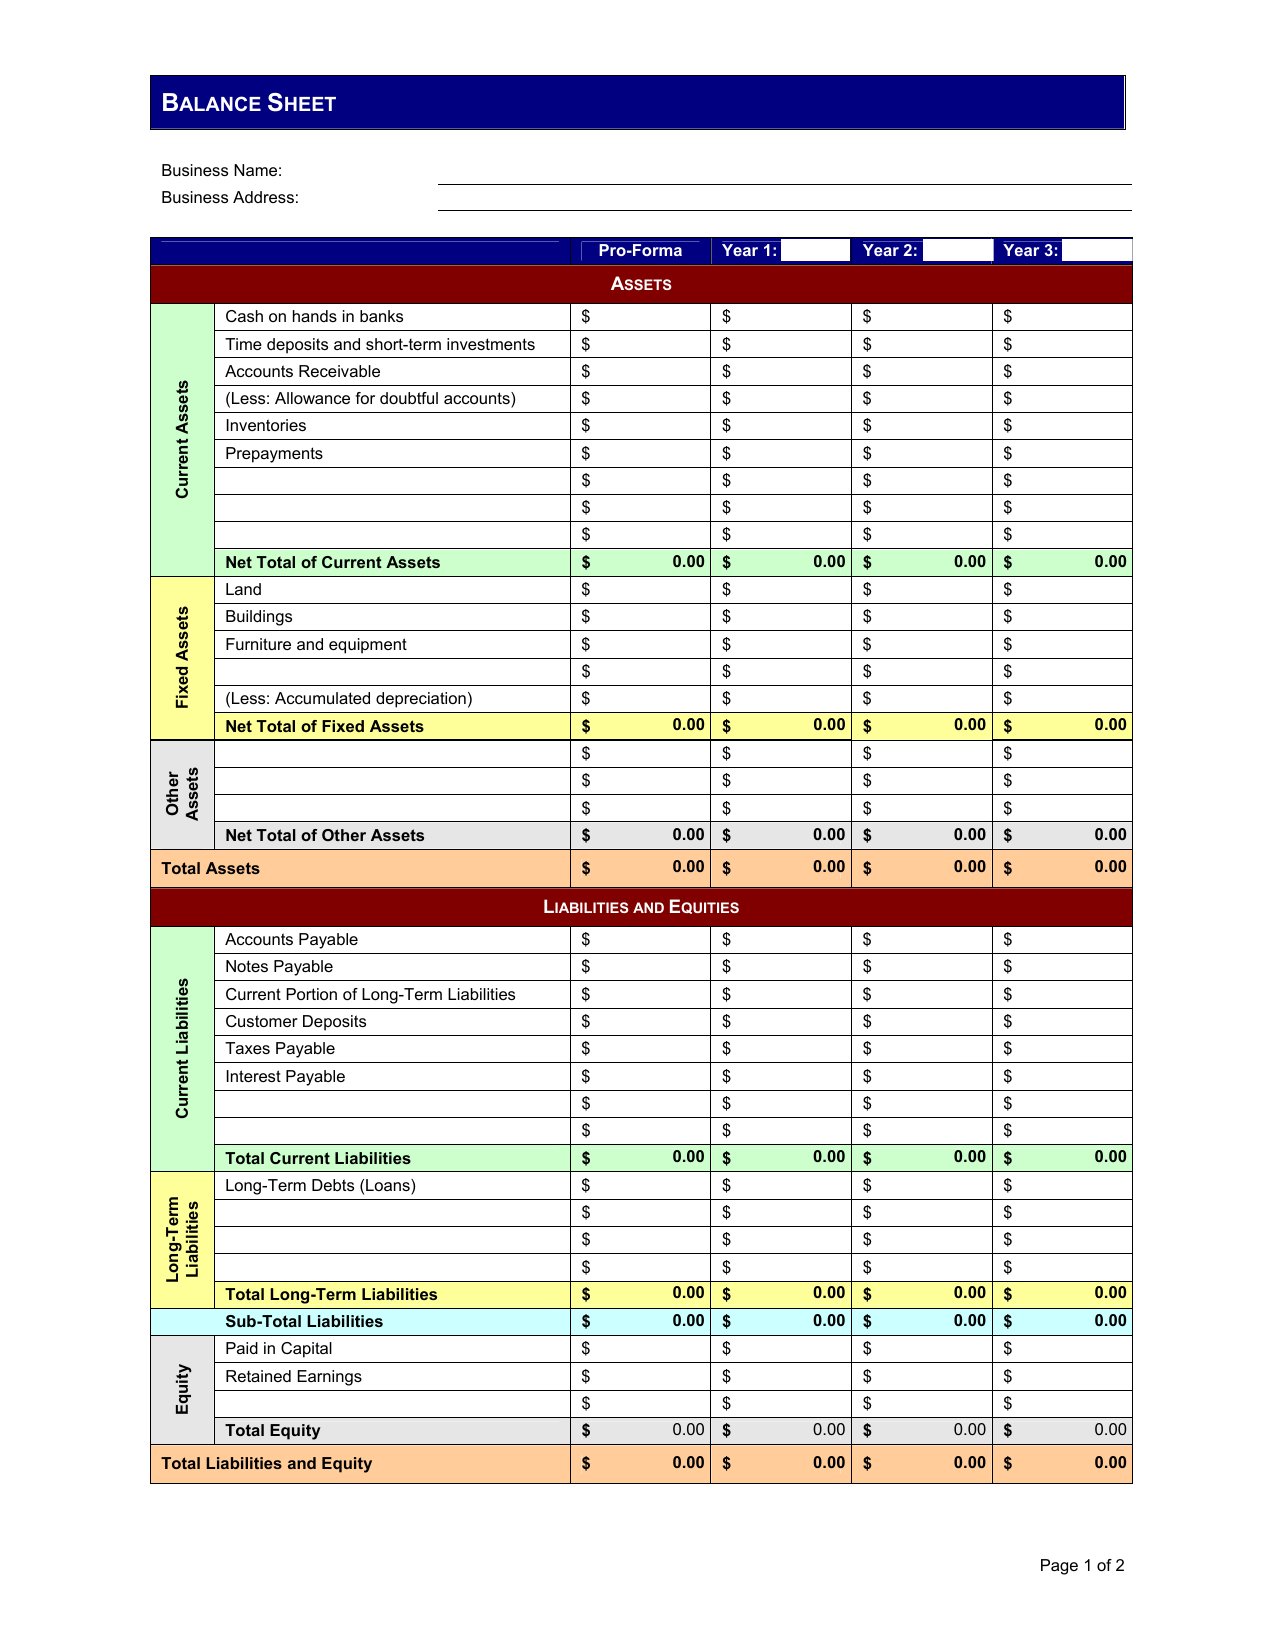 Pro Forma Excel Spreadsheet Throughout Pro Formace Sheet